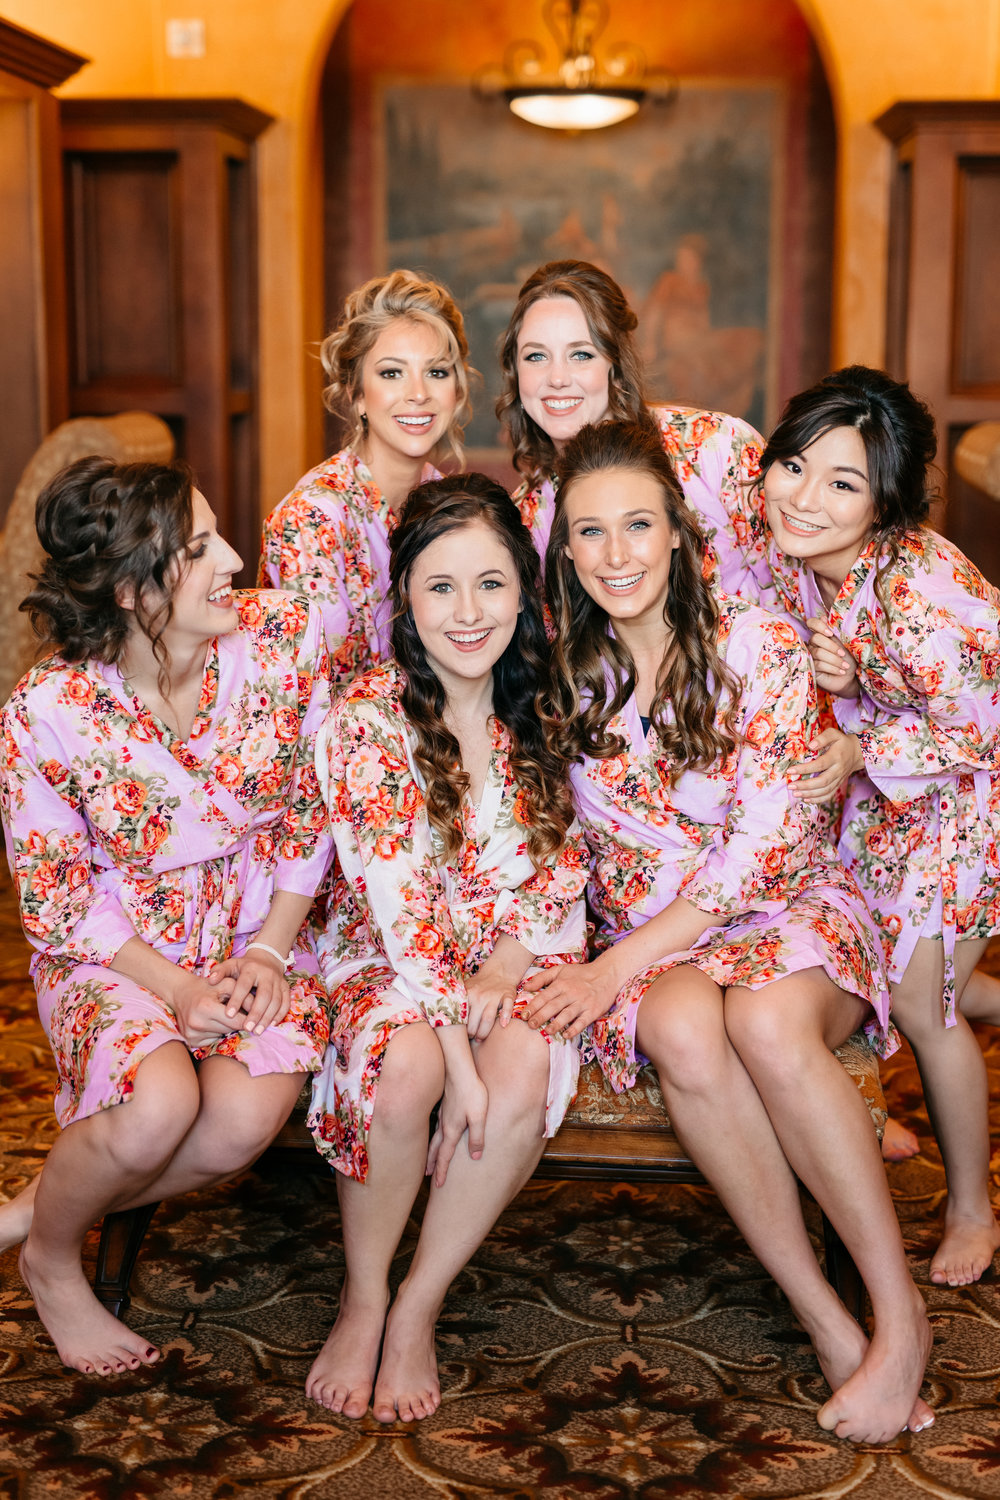 Sammy and her bridesmaids in silk robes, Orlando bride